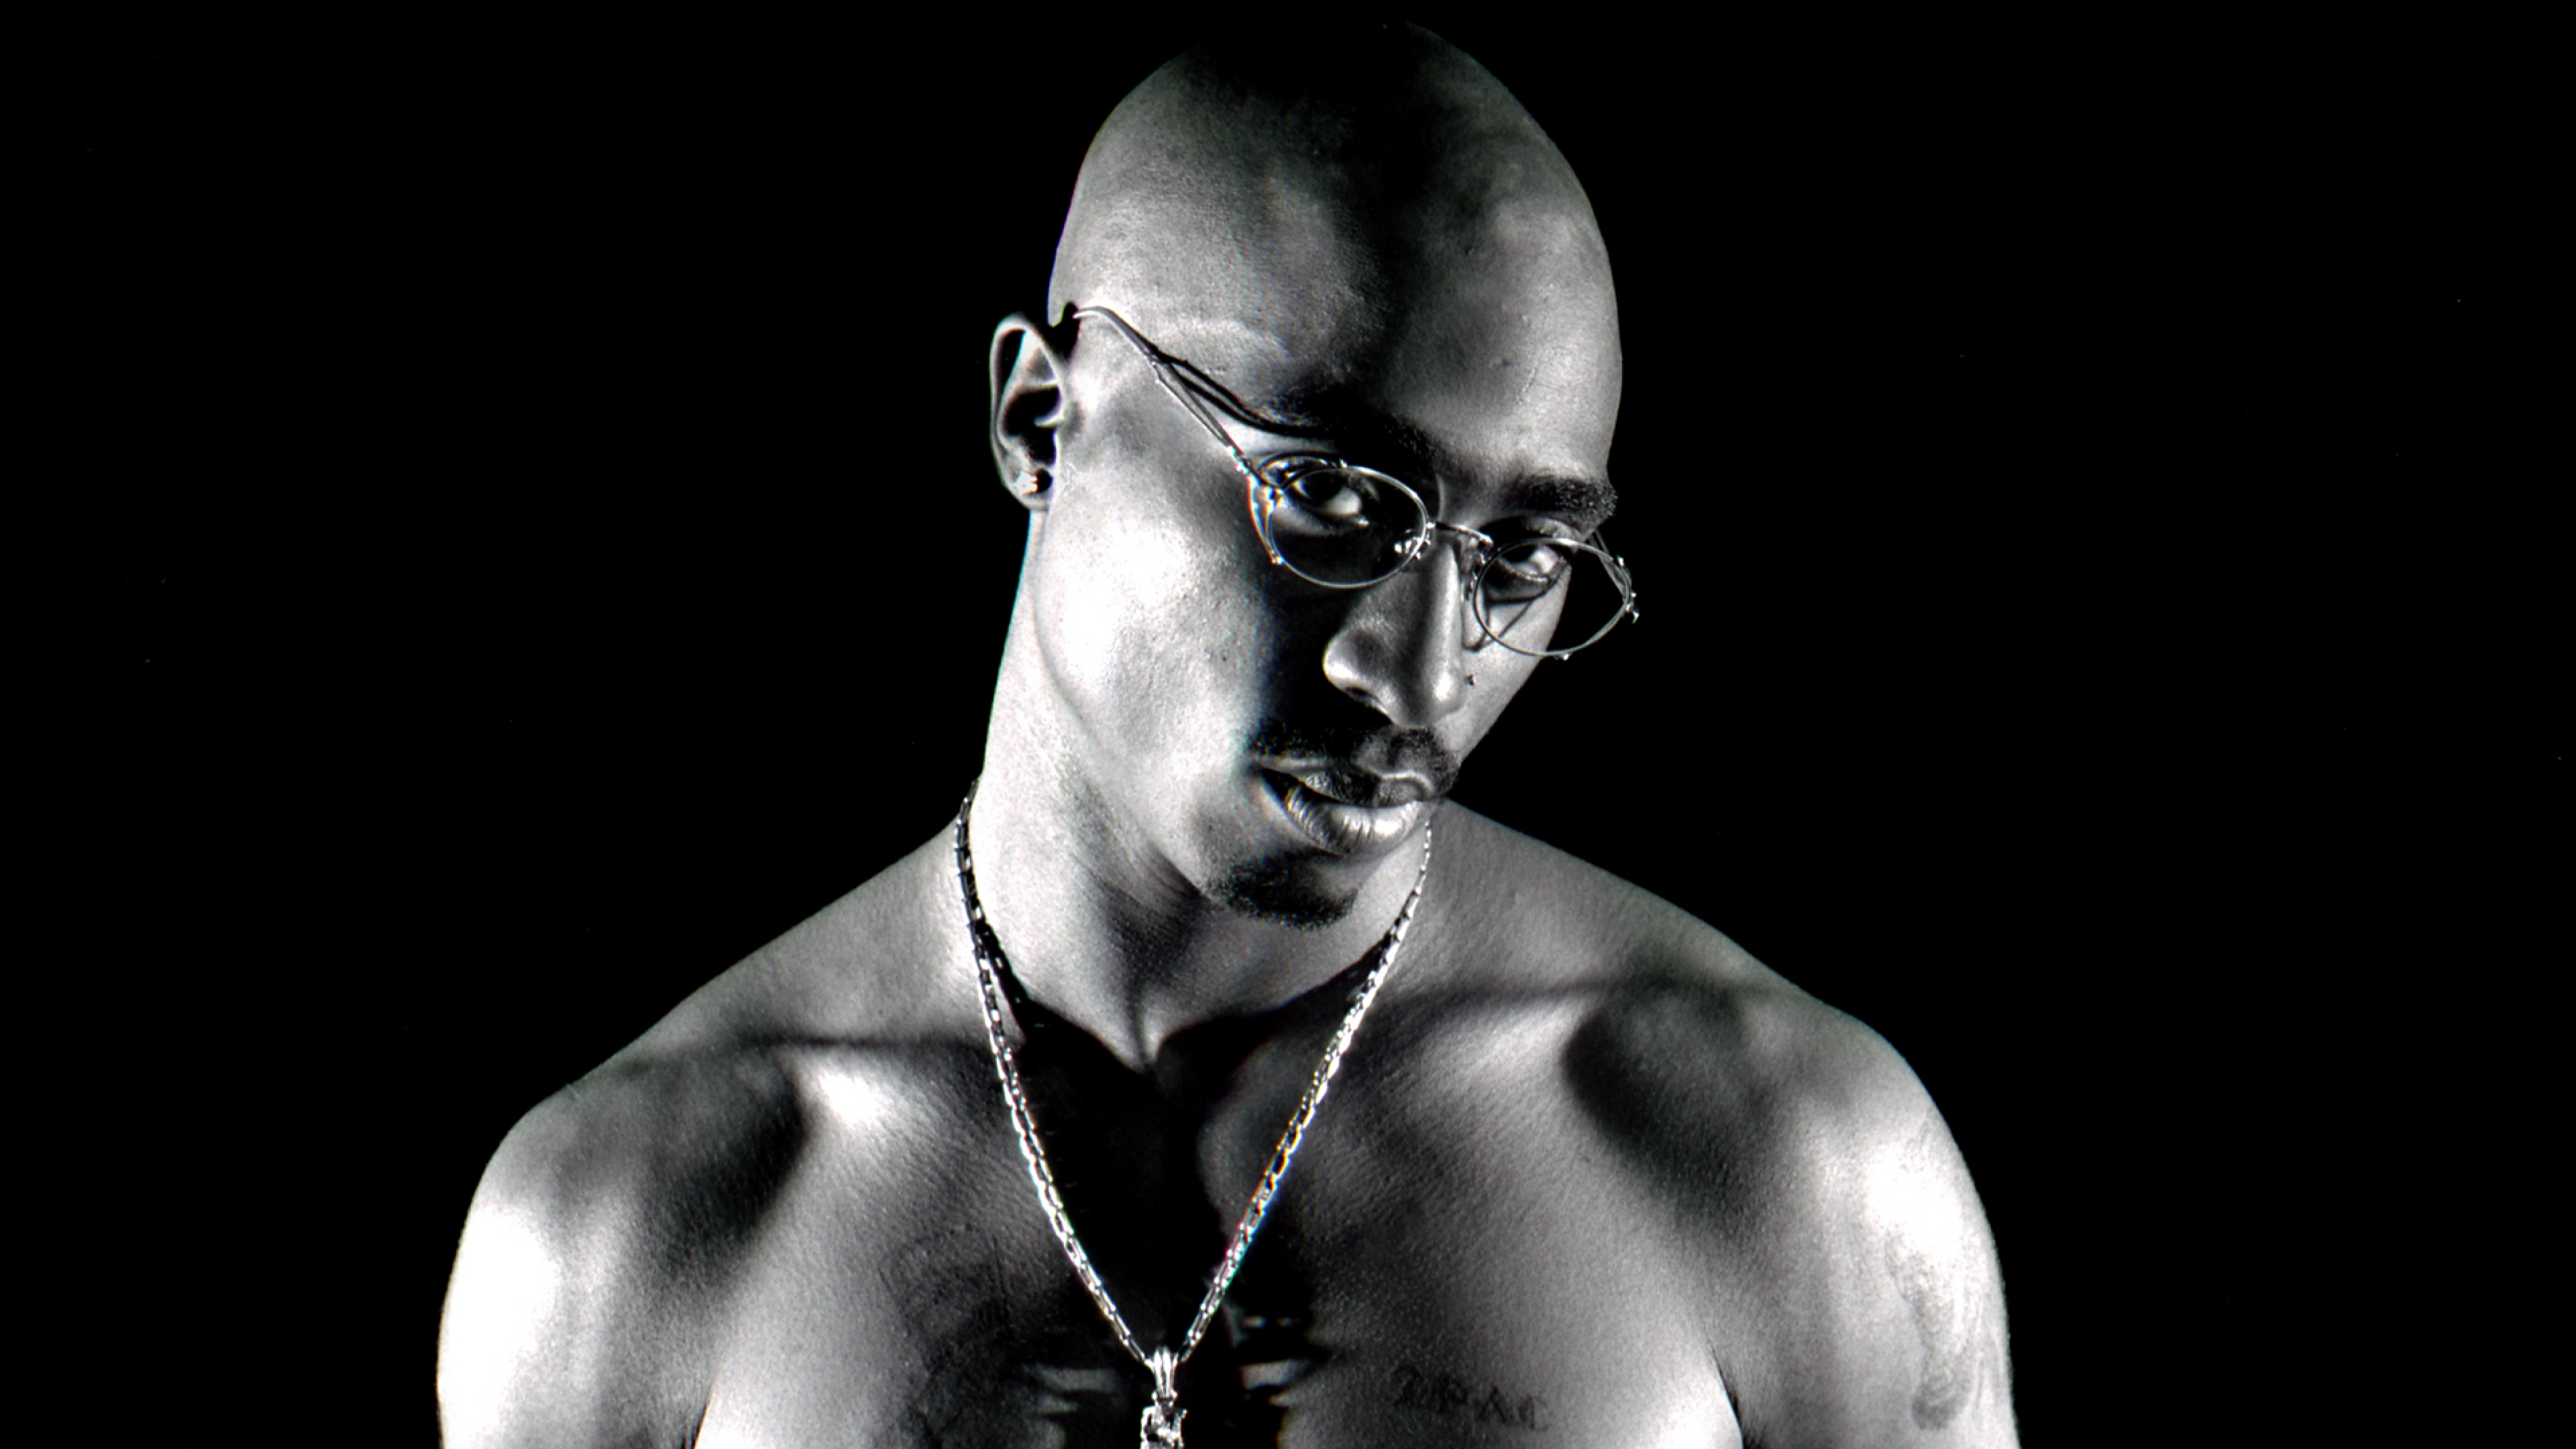 3840x2160 tupac, 2pac, rapper 4K Wallpaper, HD Music 4K Wallpapers, Images, Photos and Background